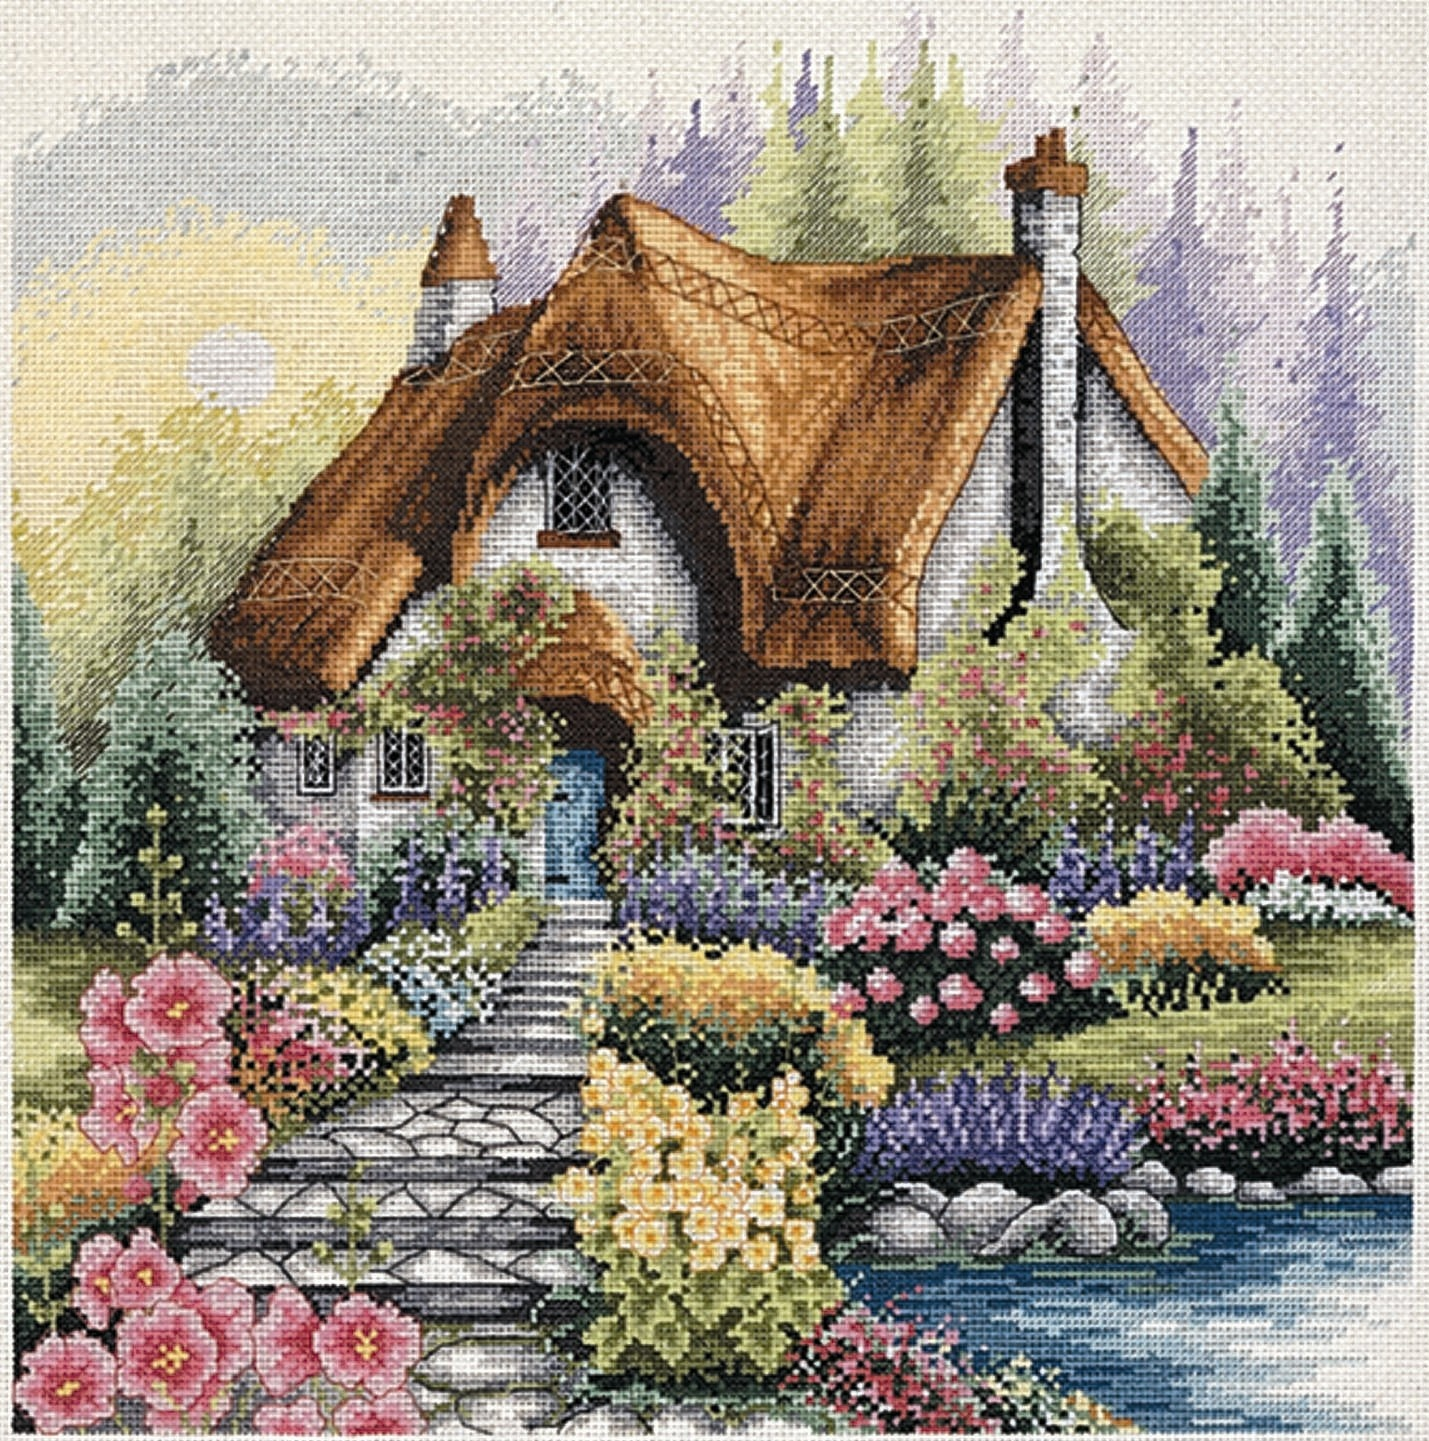 PCE922 Anchor Cross Stitch - Lakeside Cottage. Anchor. Набор для вышивания нитками